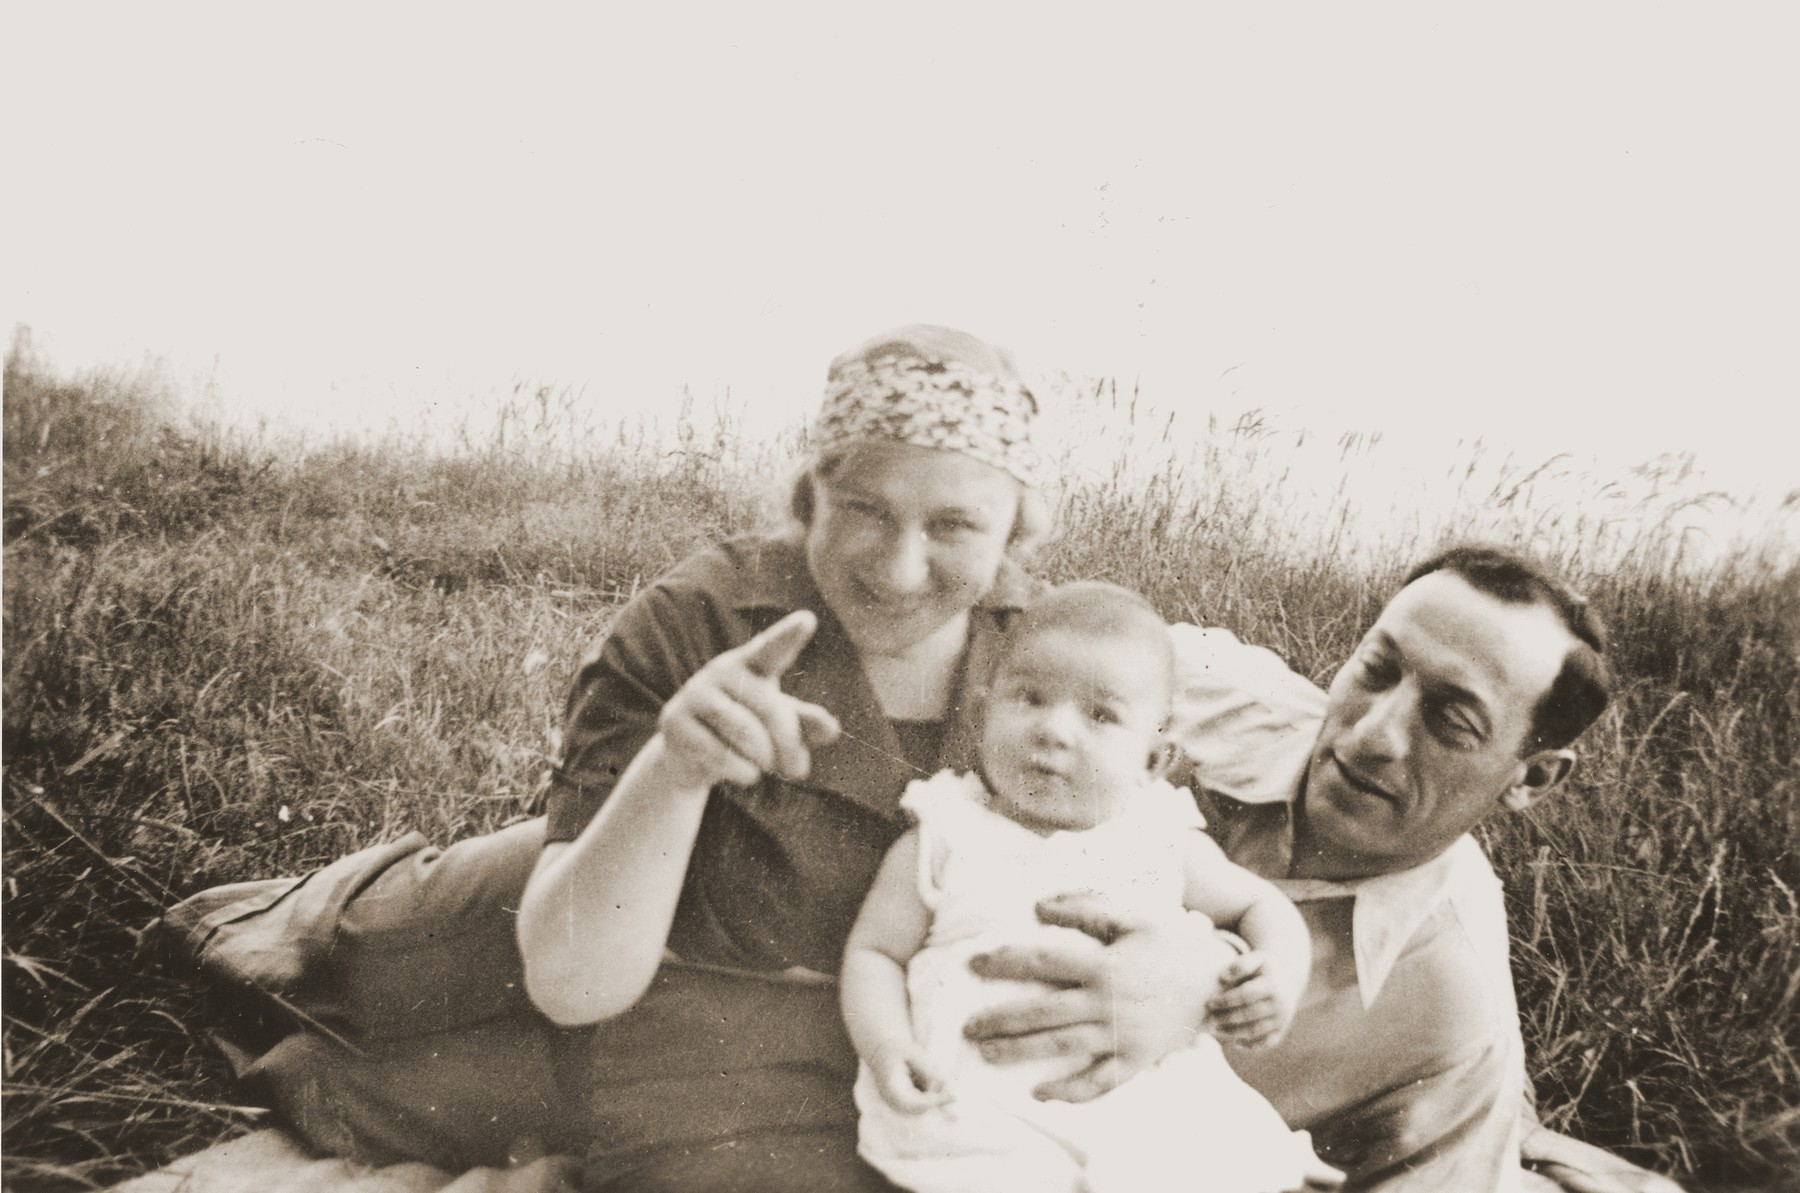 Bernhard and Sonja Schadur Goldstein with their daughter Evgenia sitting in a field.    Sonja was the sister of Michel Schadur, whom he set up in the fruit business in Berlin in the early 1930s.  Sonja married a German-Jew, Bernhard Goldstein and had one daughter while living in Berlin.  After Kristallnacht Bernhard was imprisoned briefly in Sachsenhausen.  Upon his release the family fled to Antwerp.  In March 1940 they secured American visas and sailed to the U.S.